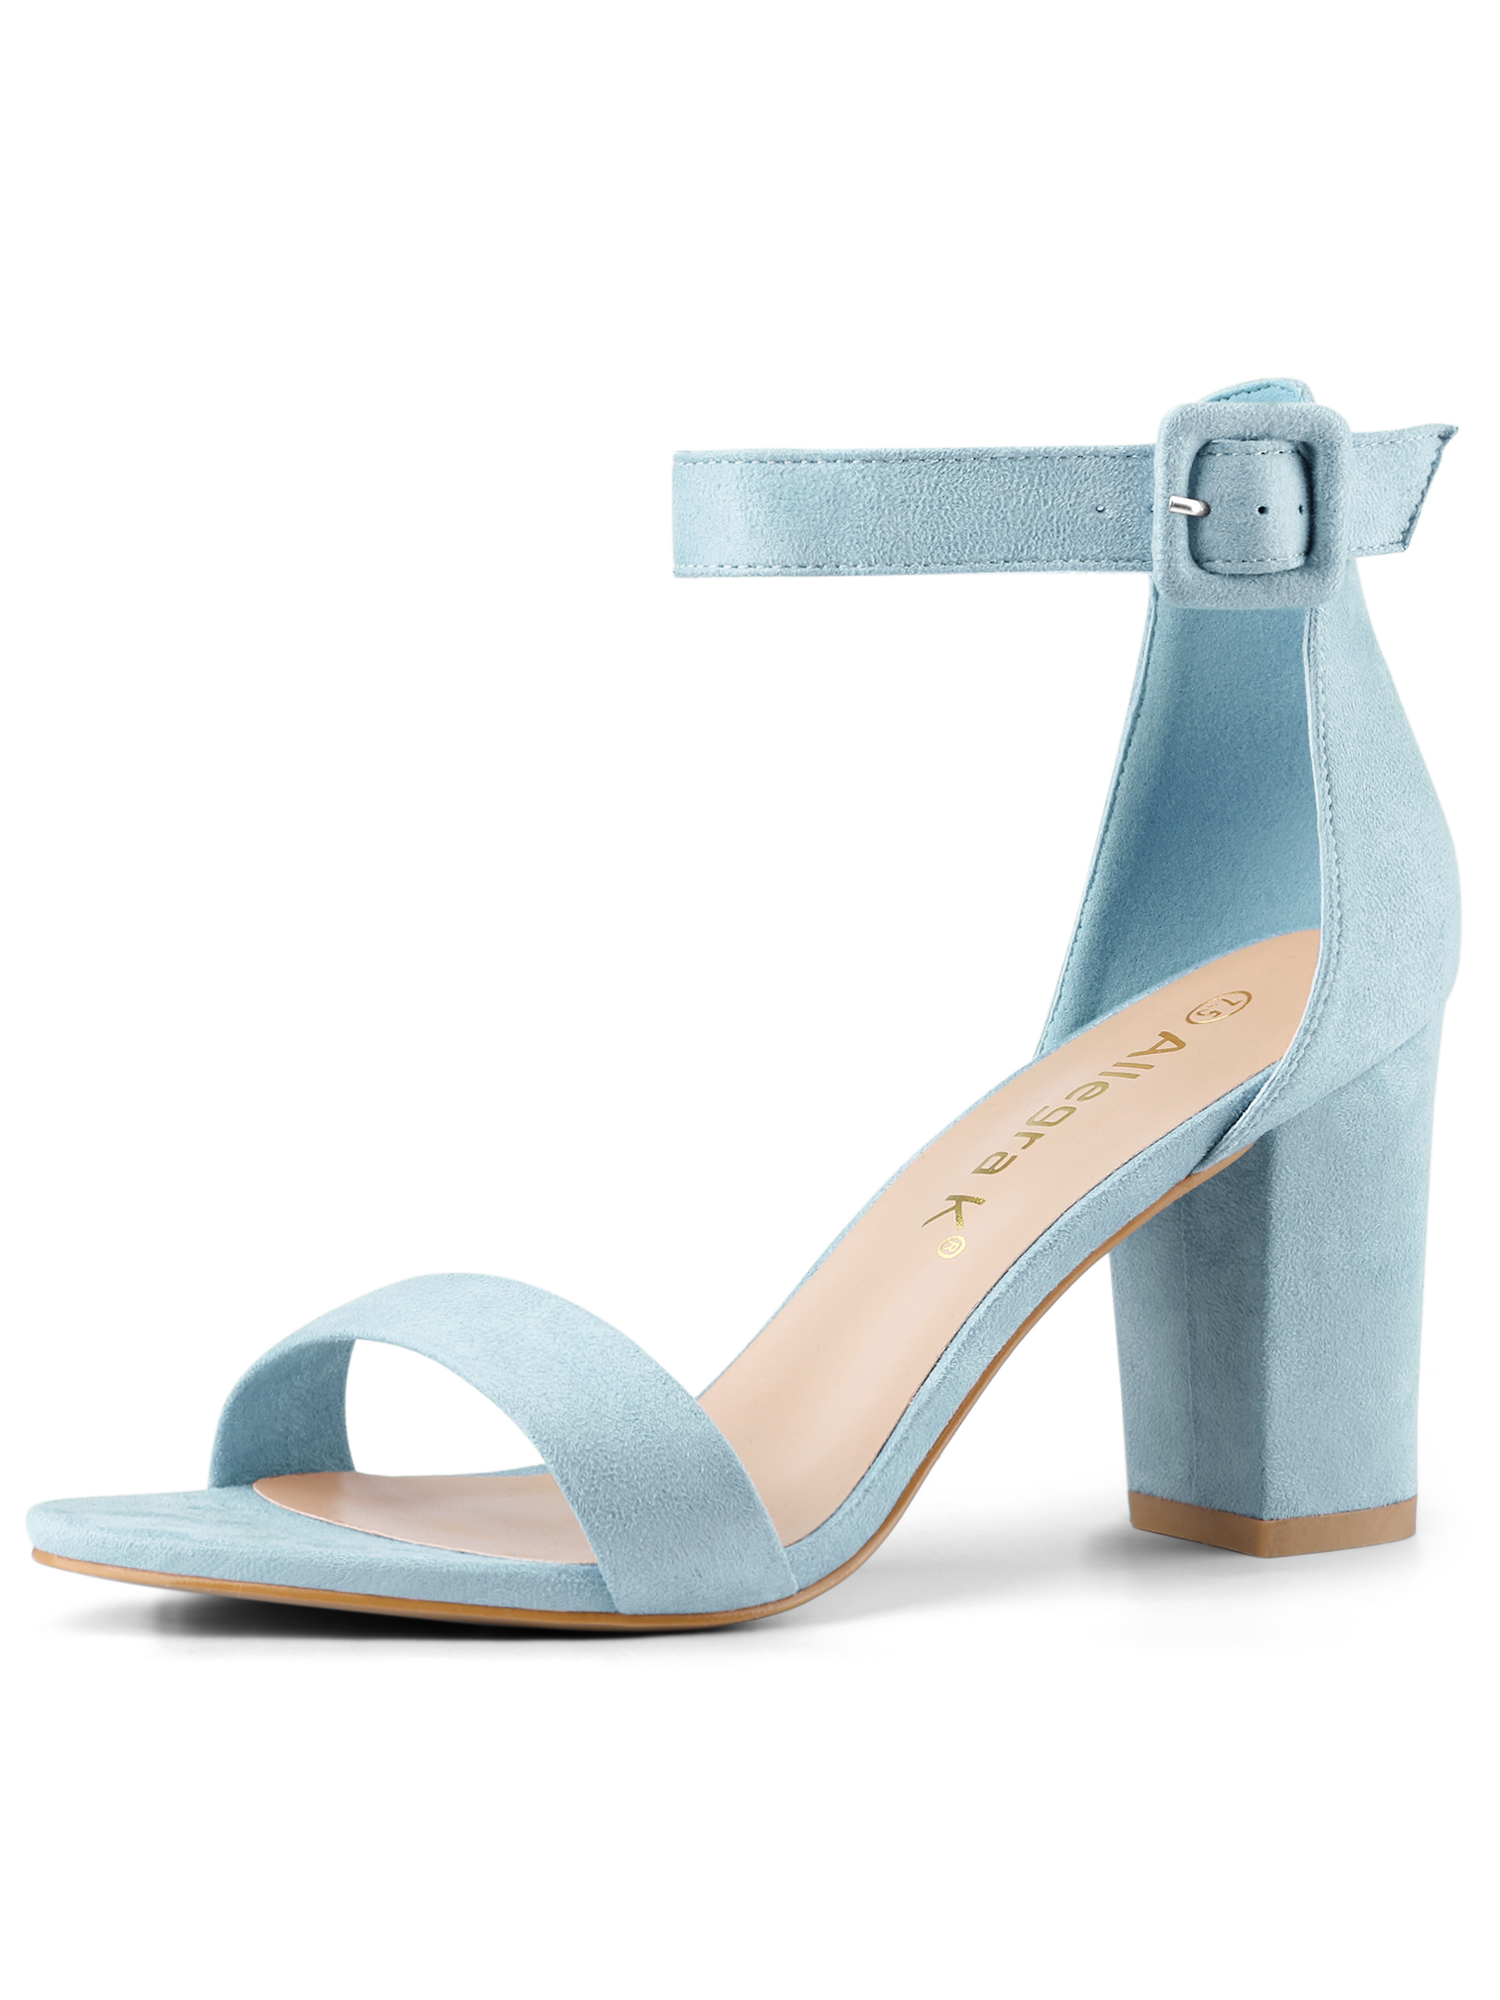 Unique Bargains Women Chunky Heel Ankle Strap Sandals Open Toe Block Heel